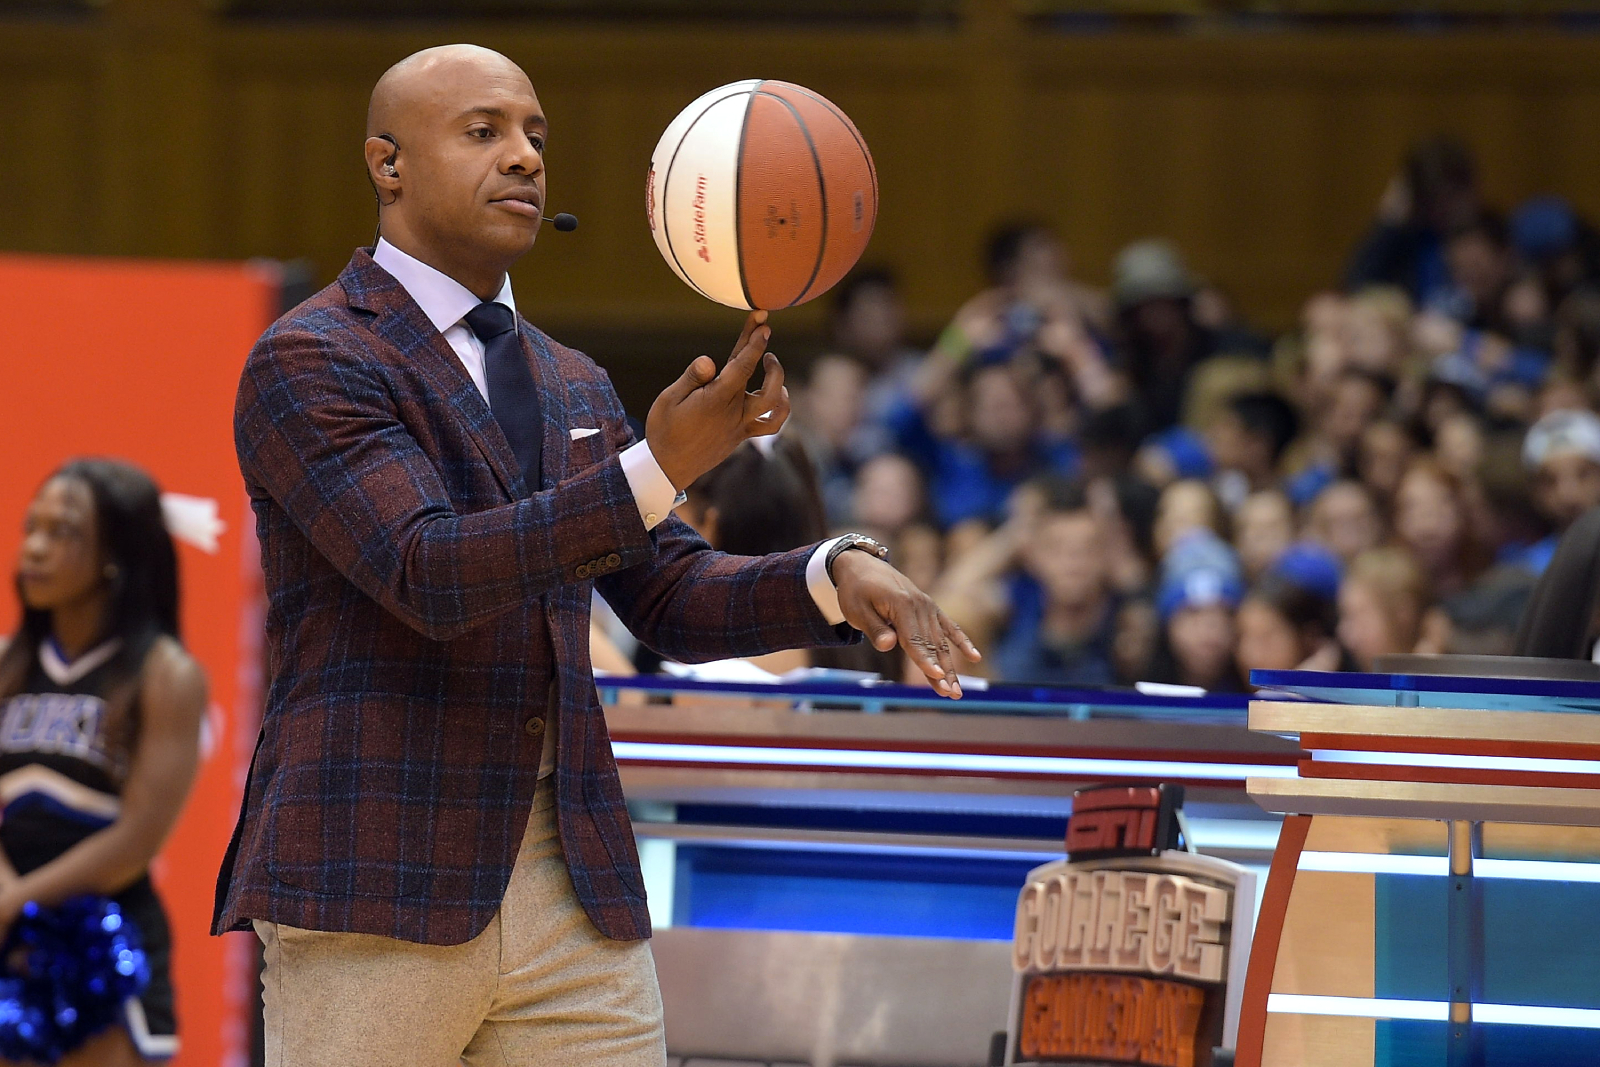 Jay Williams is one of the most prominent faces at ESPN. So, how good was he during his basketball career before going to ESPN?